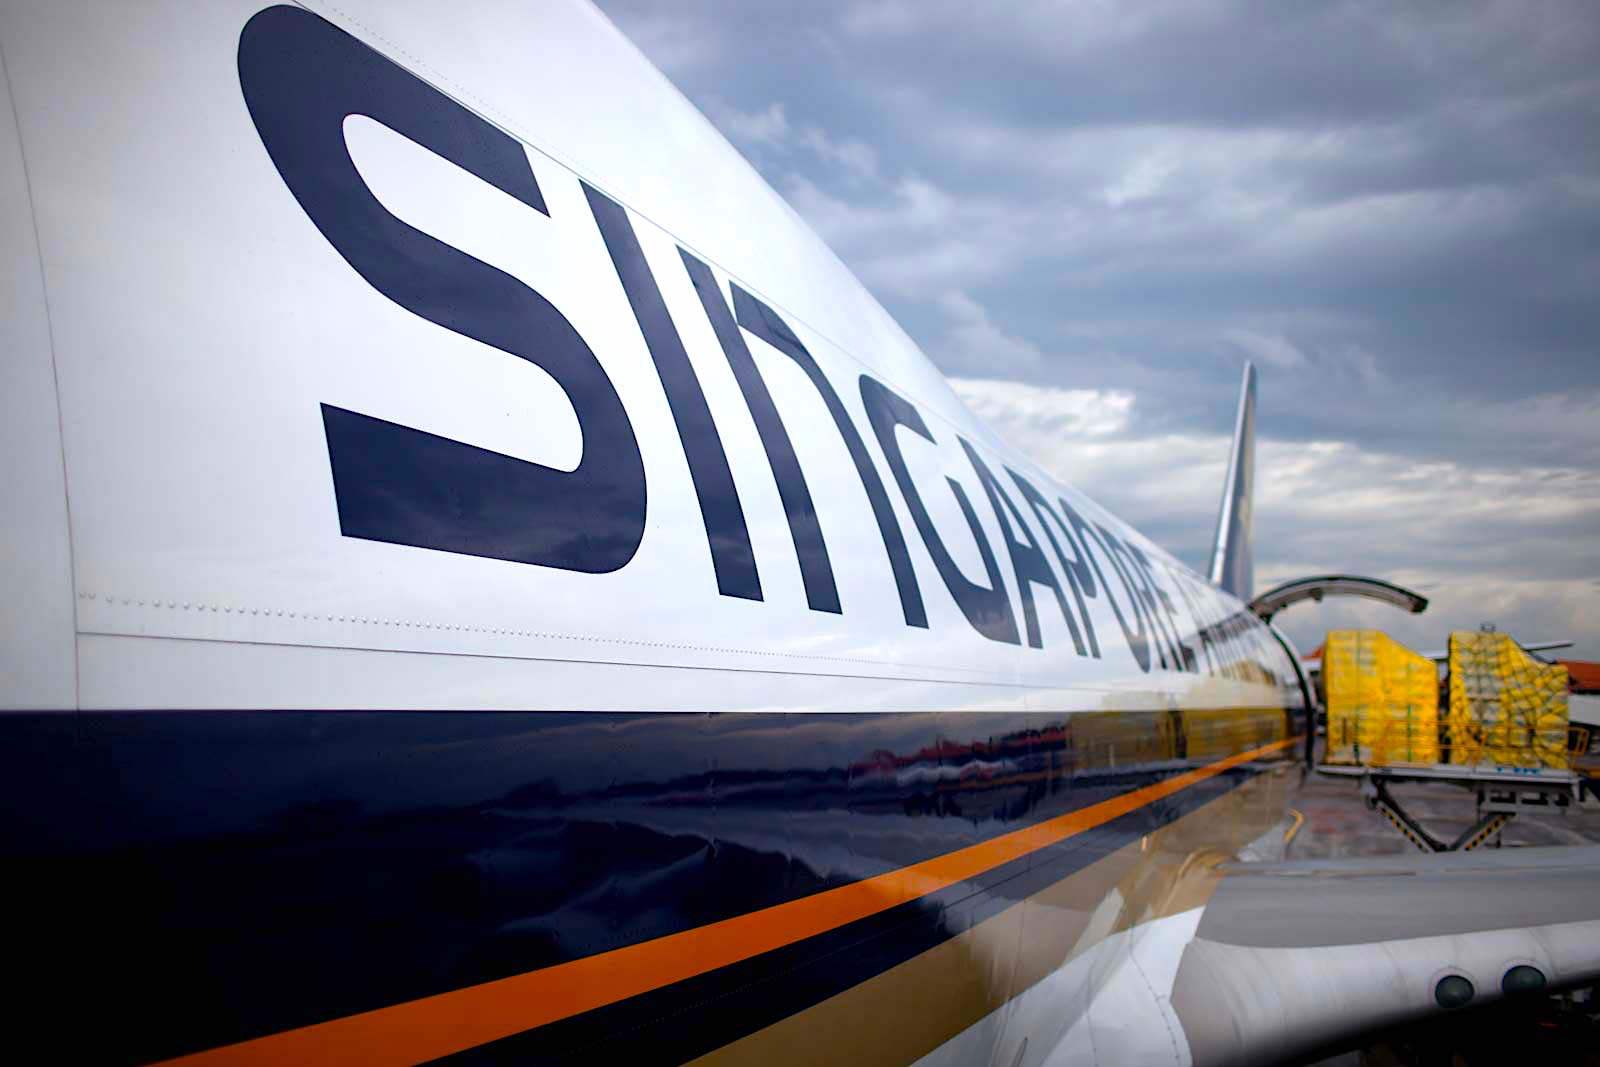 Singapore Airlines sees 9.7% cargo decline in Sept